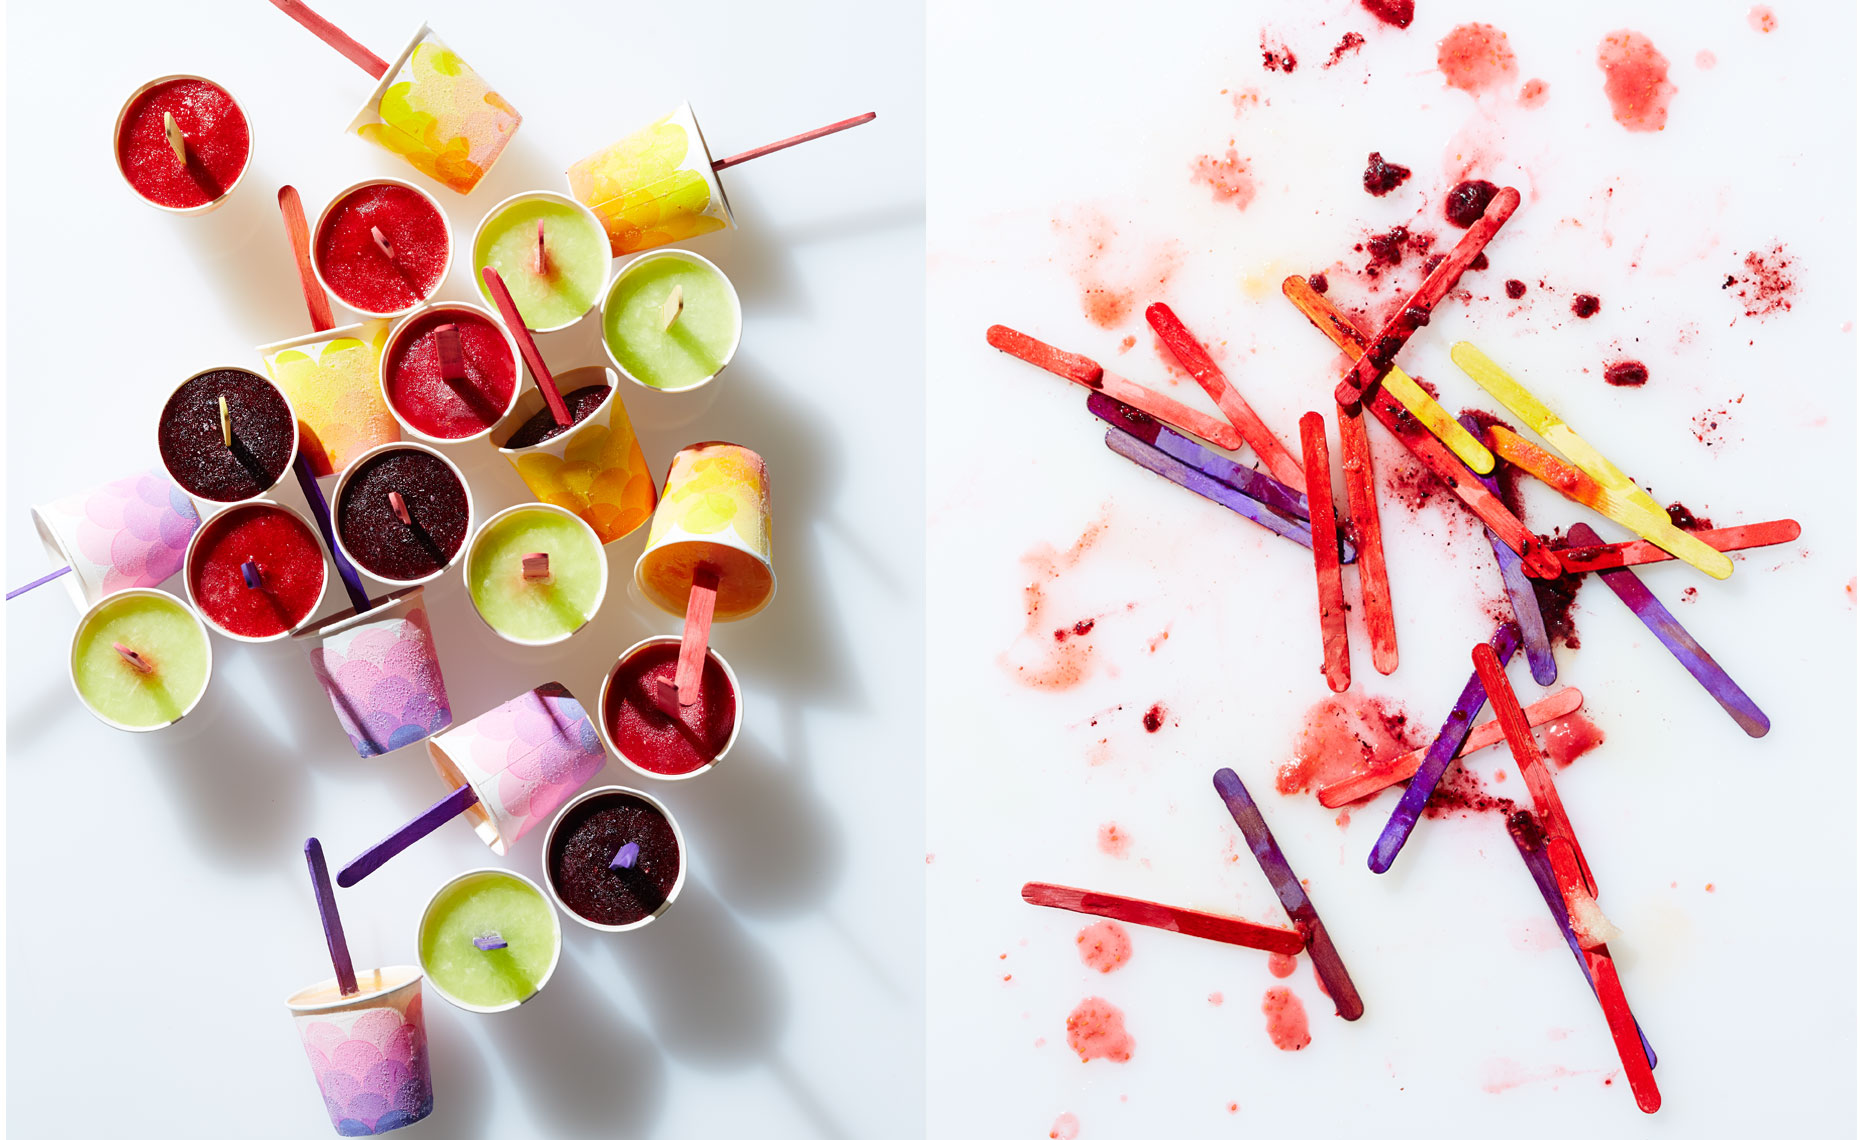 popsicles-and-popsicle-sticks.jpg